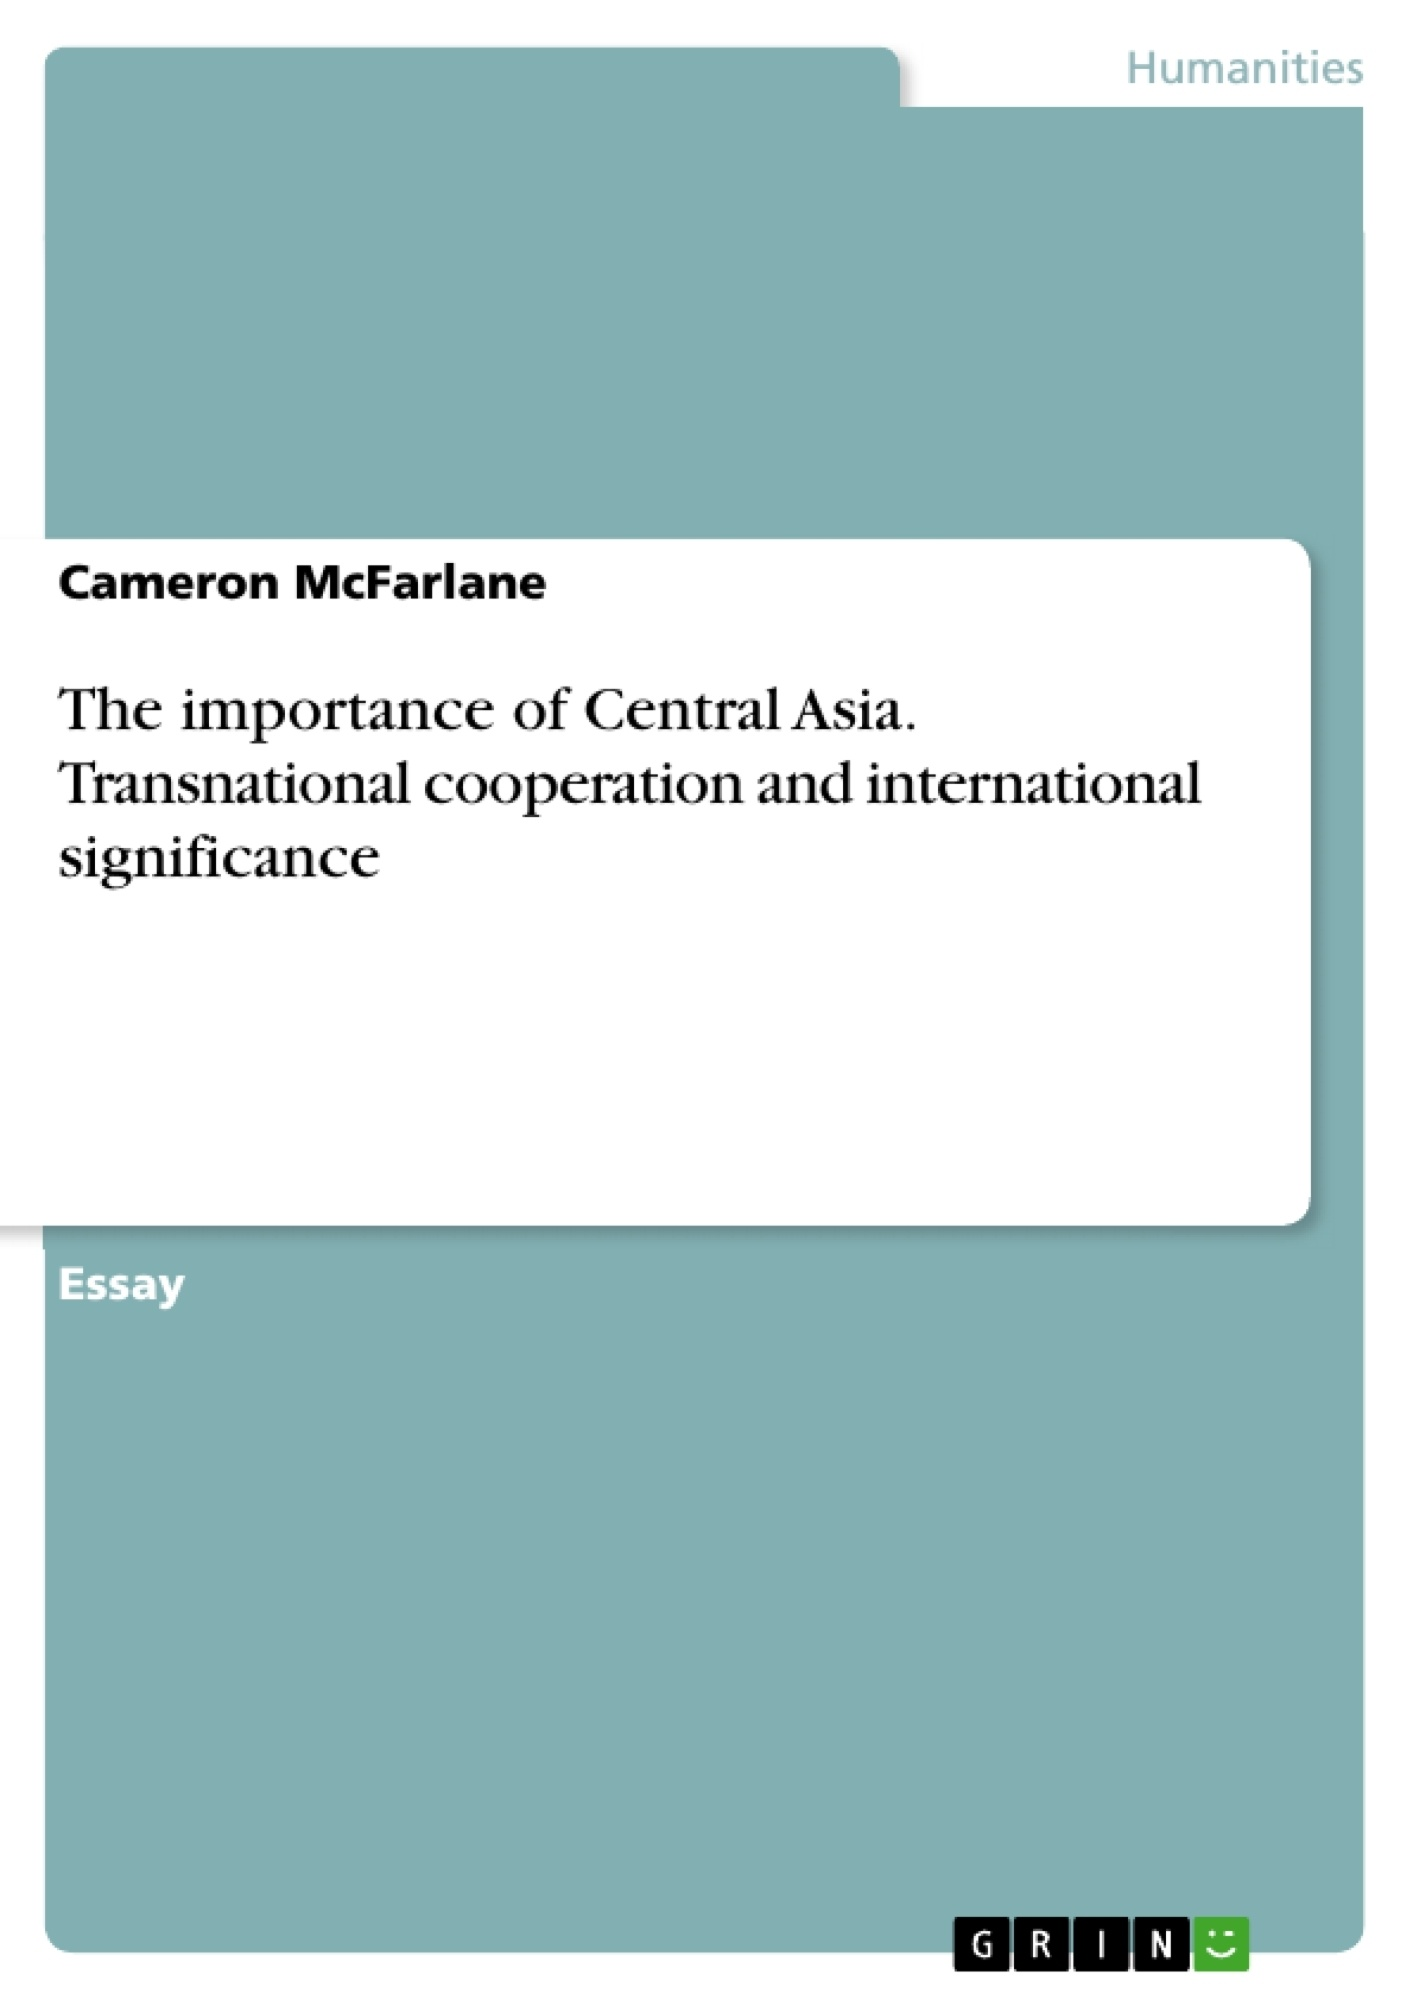 Title: The importance of Central Asia. Transnational cooperation and international significance